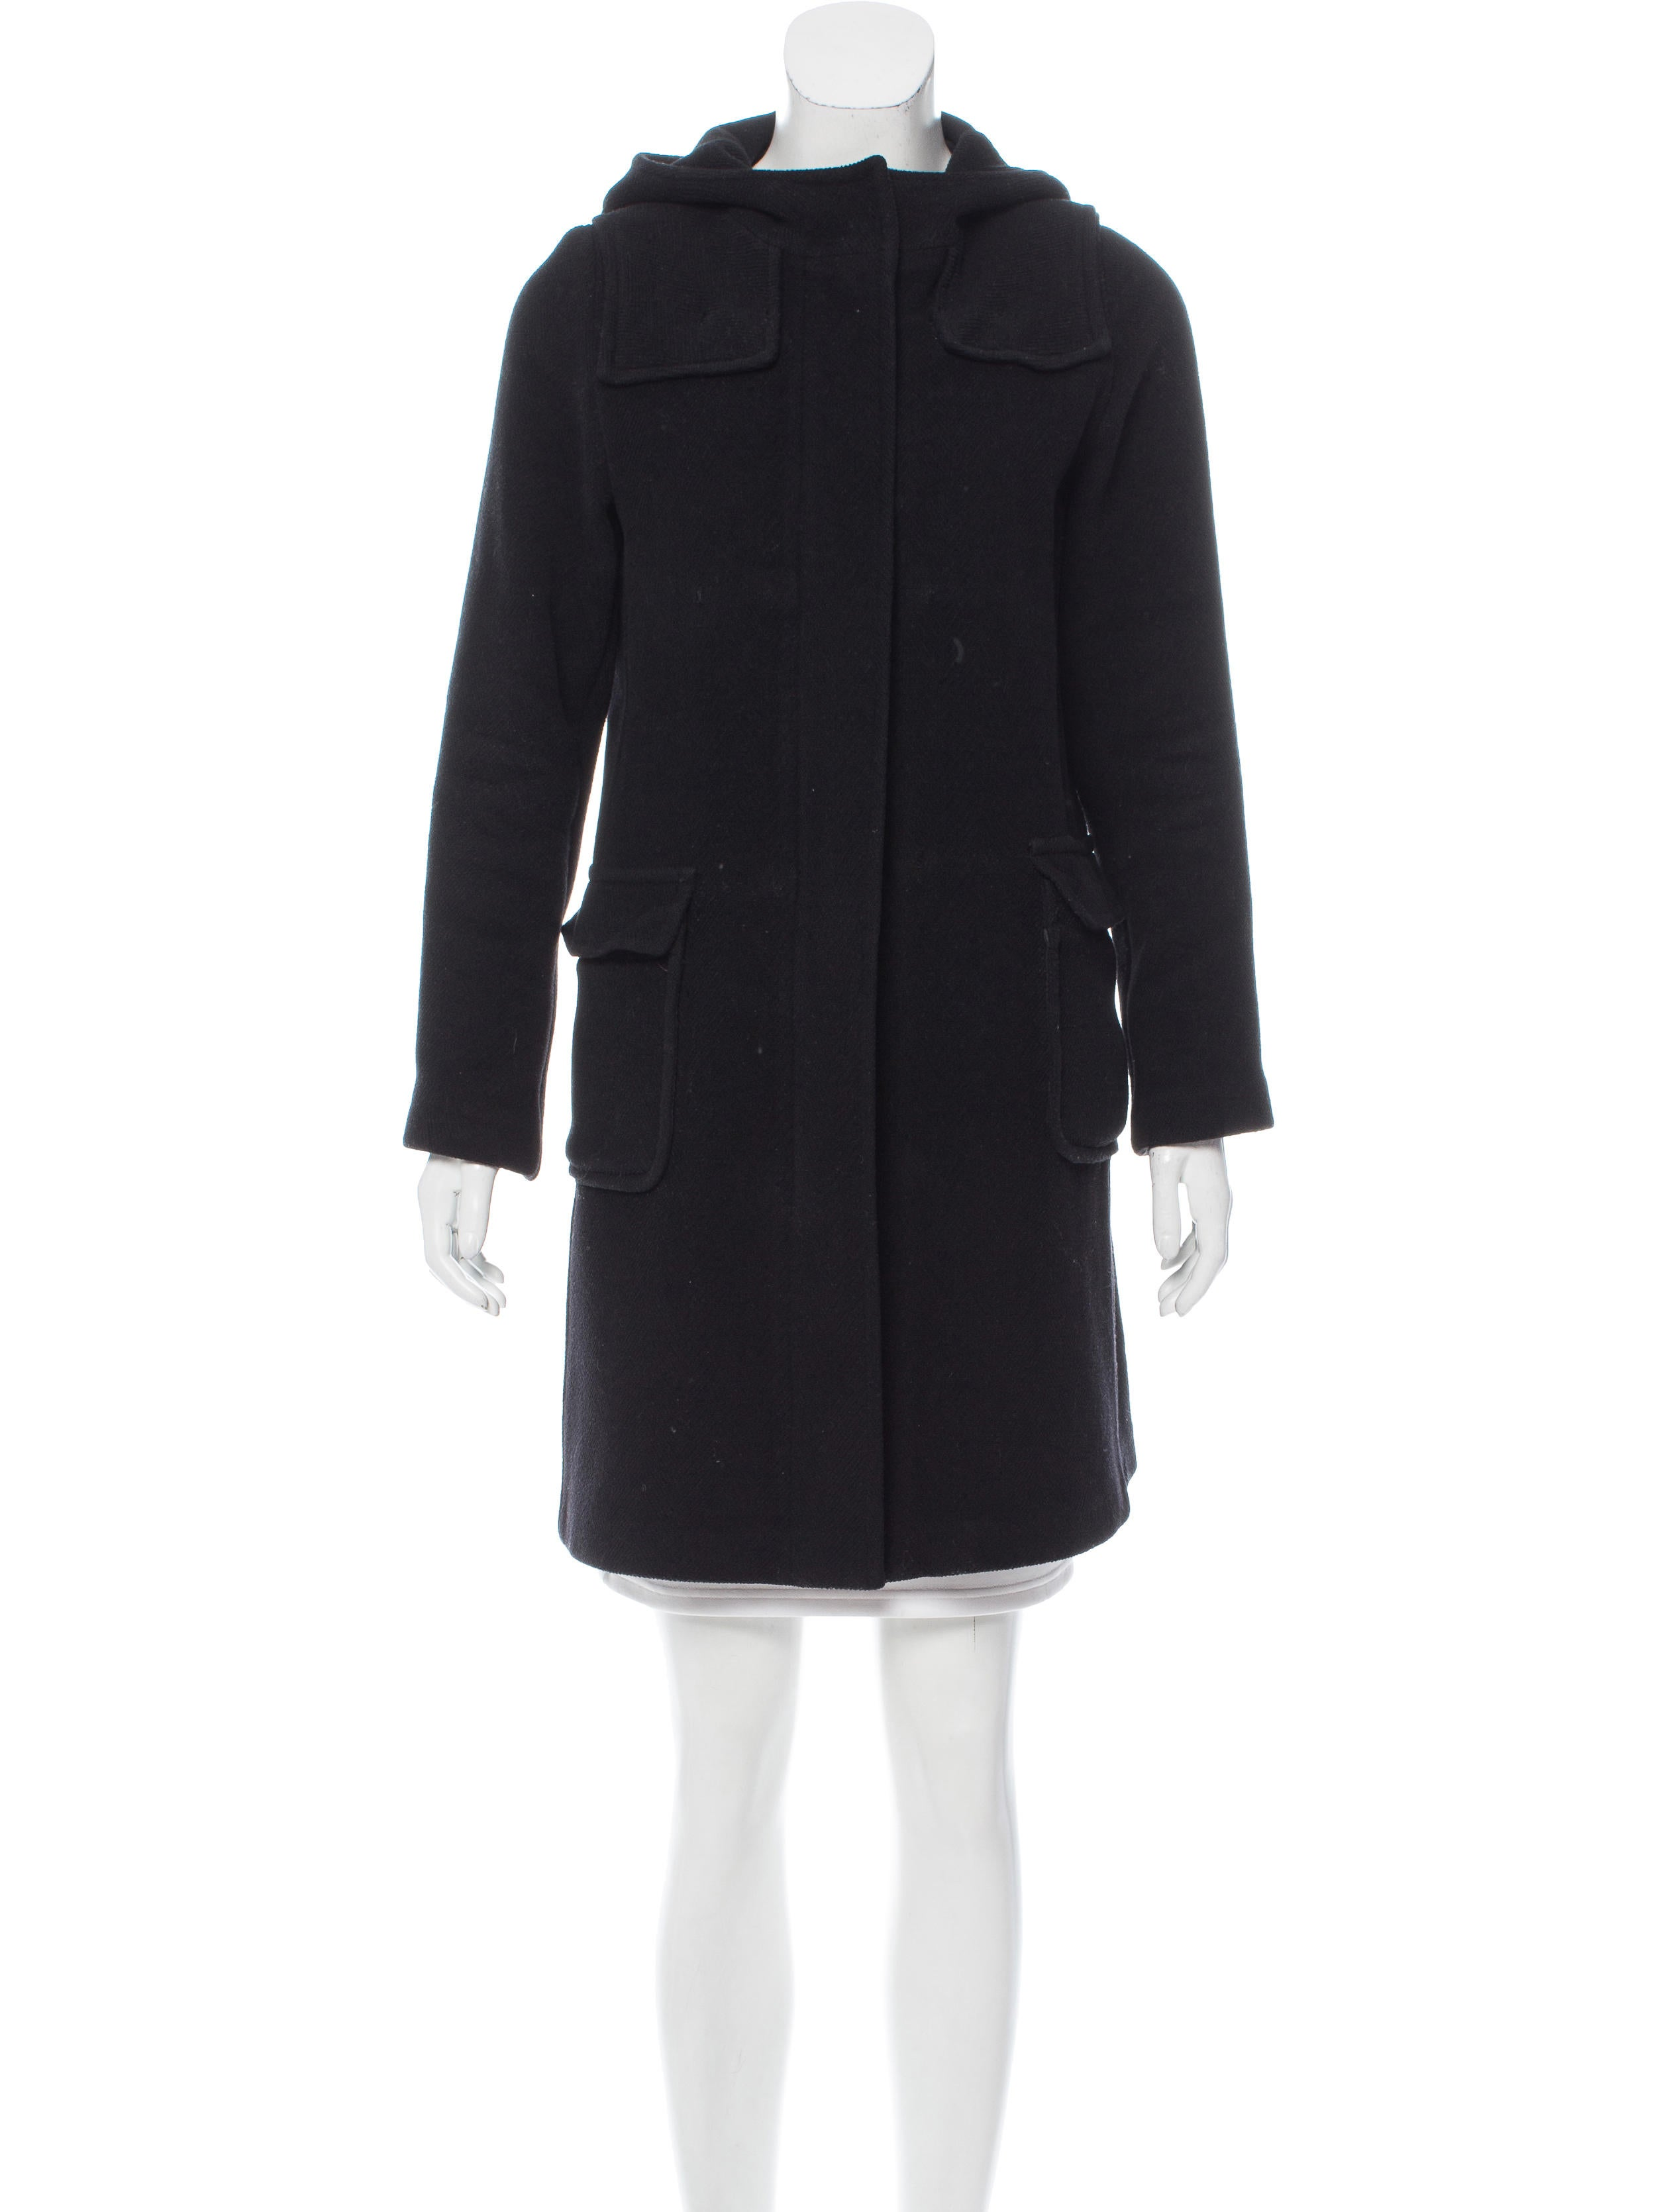 Marc Jacobs Womens Wool Hooded Coat. Sold by BHFO. $ $ tiodegwiege.cf Winter Wool Coat Women Coat Women's Slim Long Blend Hooded Collor Double Breasted Coat Outerwear. Sold by VIRTUAL STORE USA. $ $